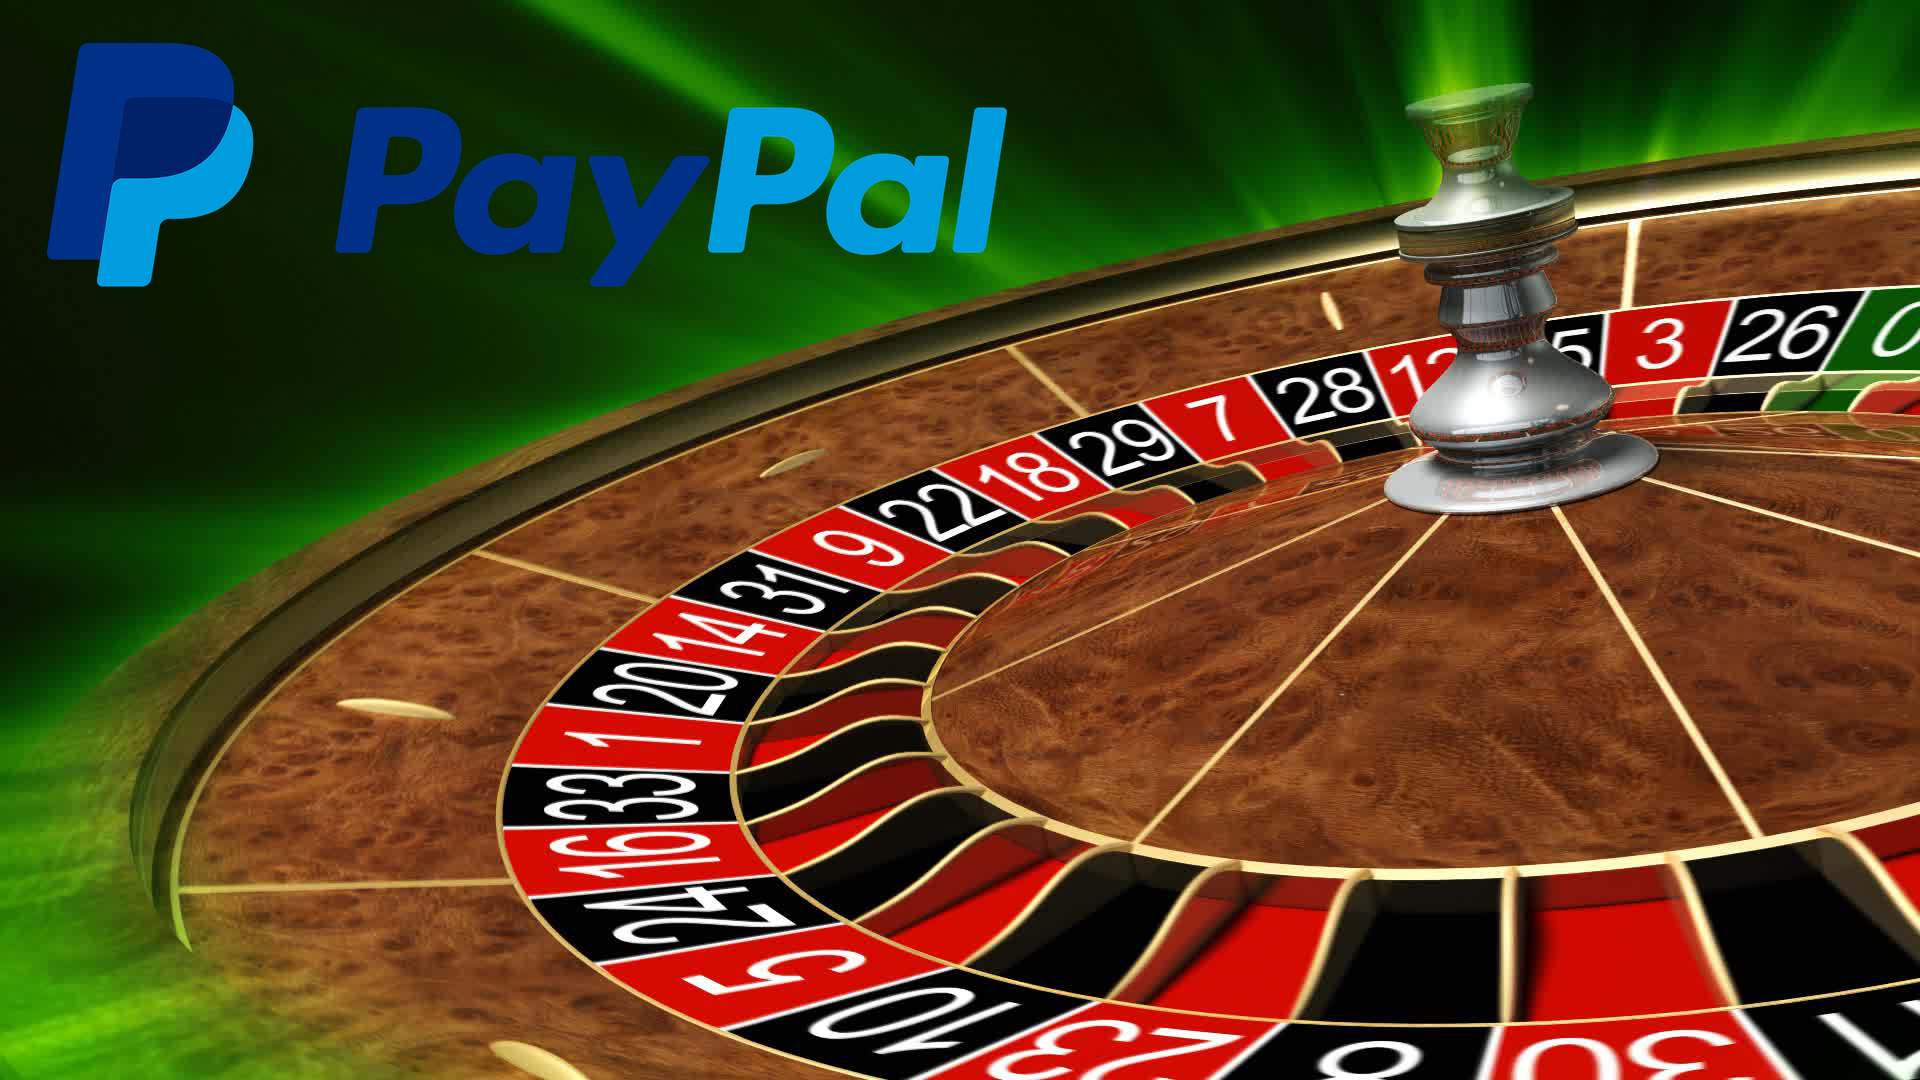 Paypal Casino List Of Uk Casinos That Accept Paypal Payments Roulette Wheel Roulette Casino